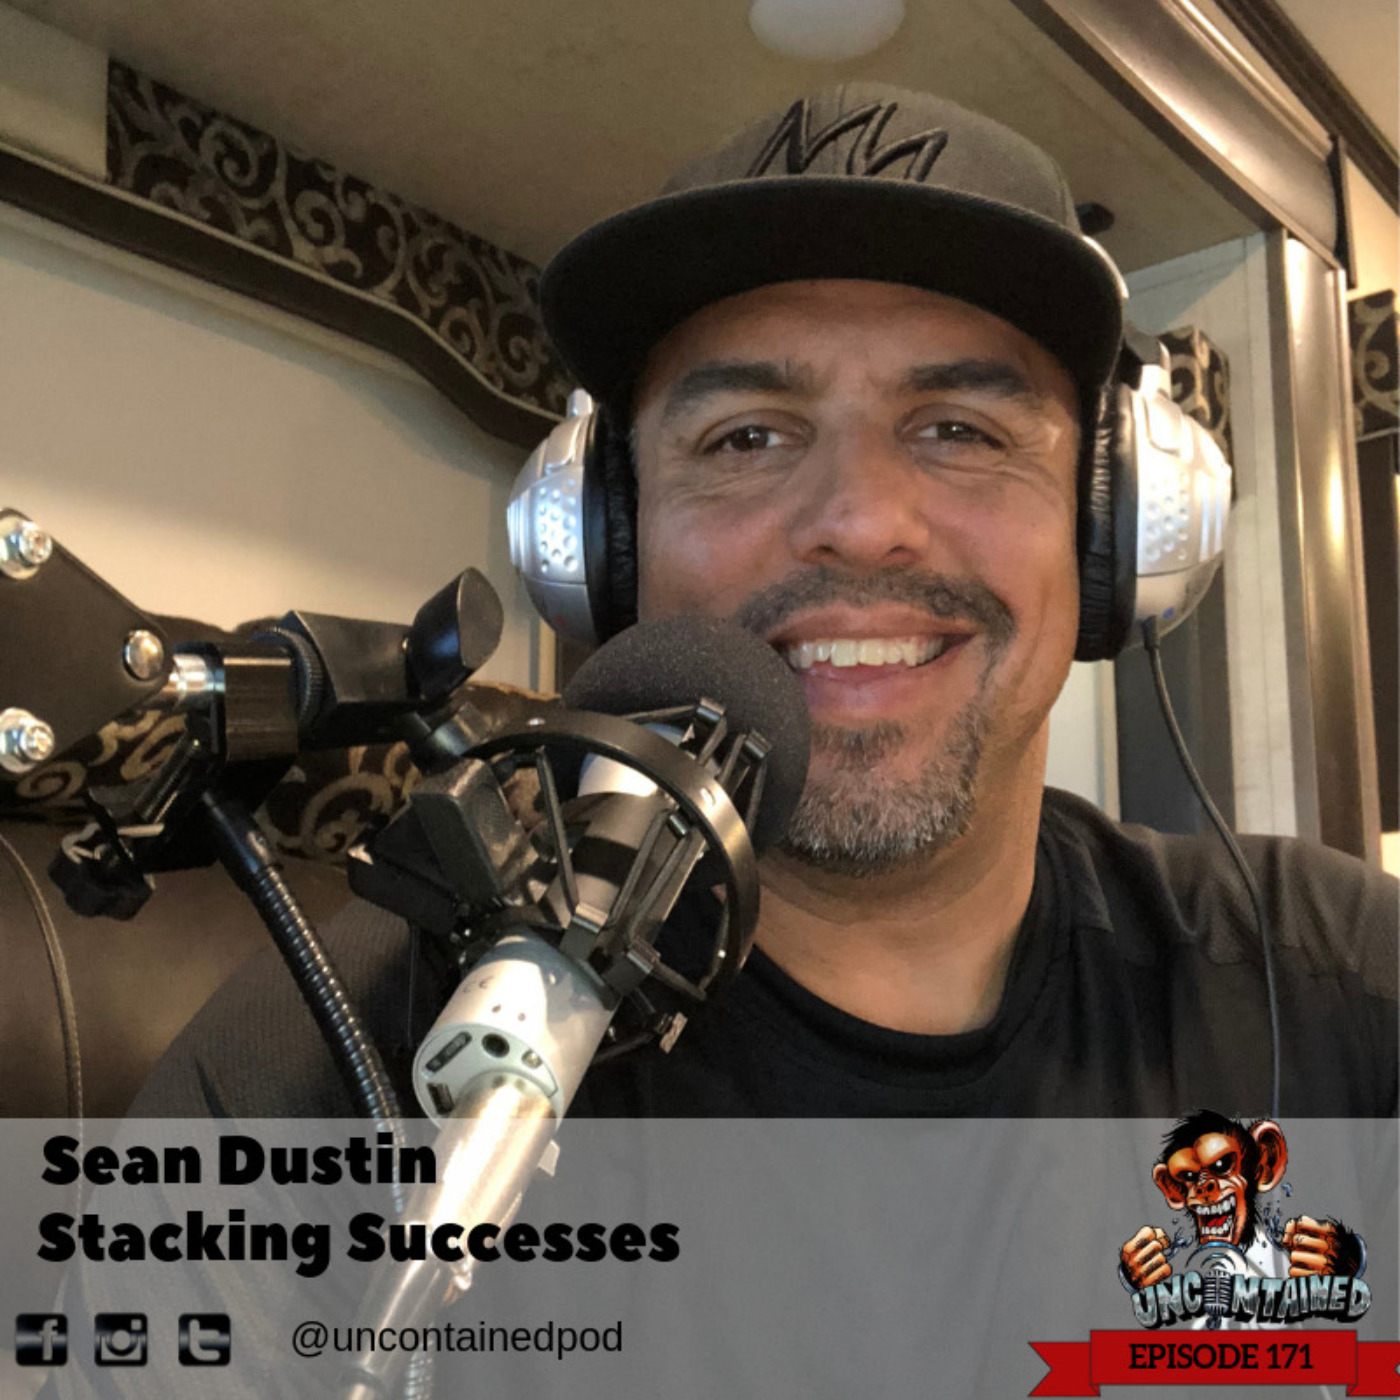 Episode 171: Sean Dustin - Stacking Successes